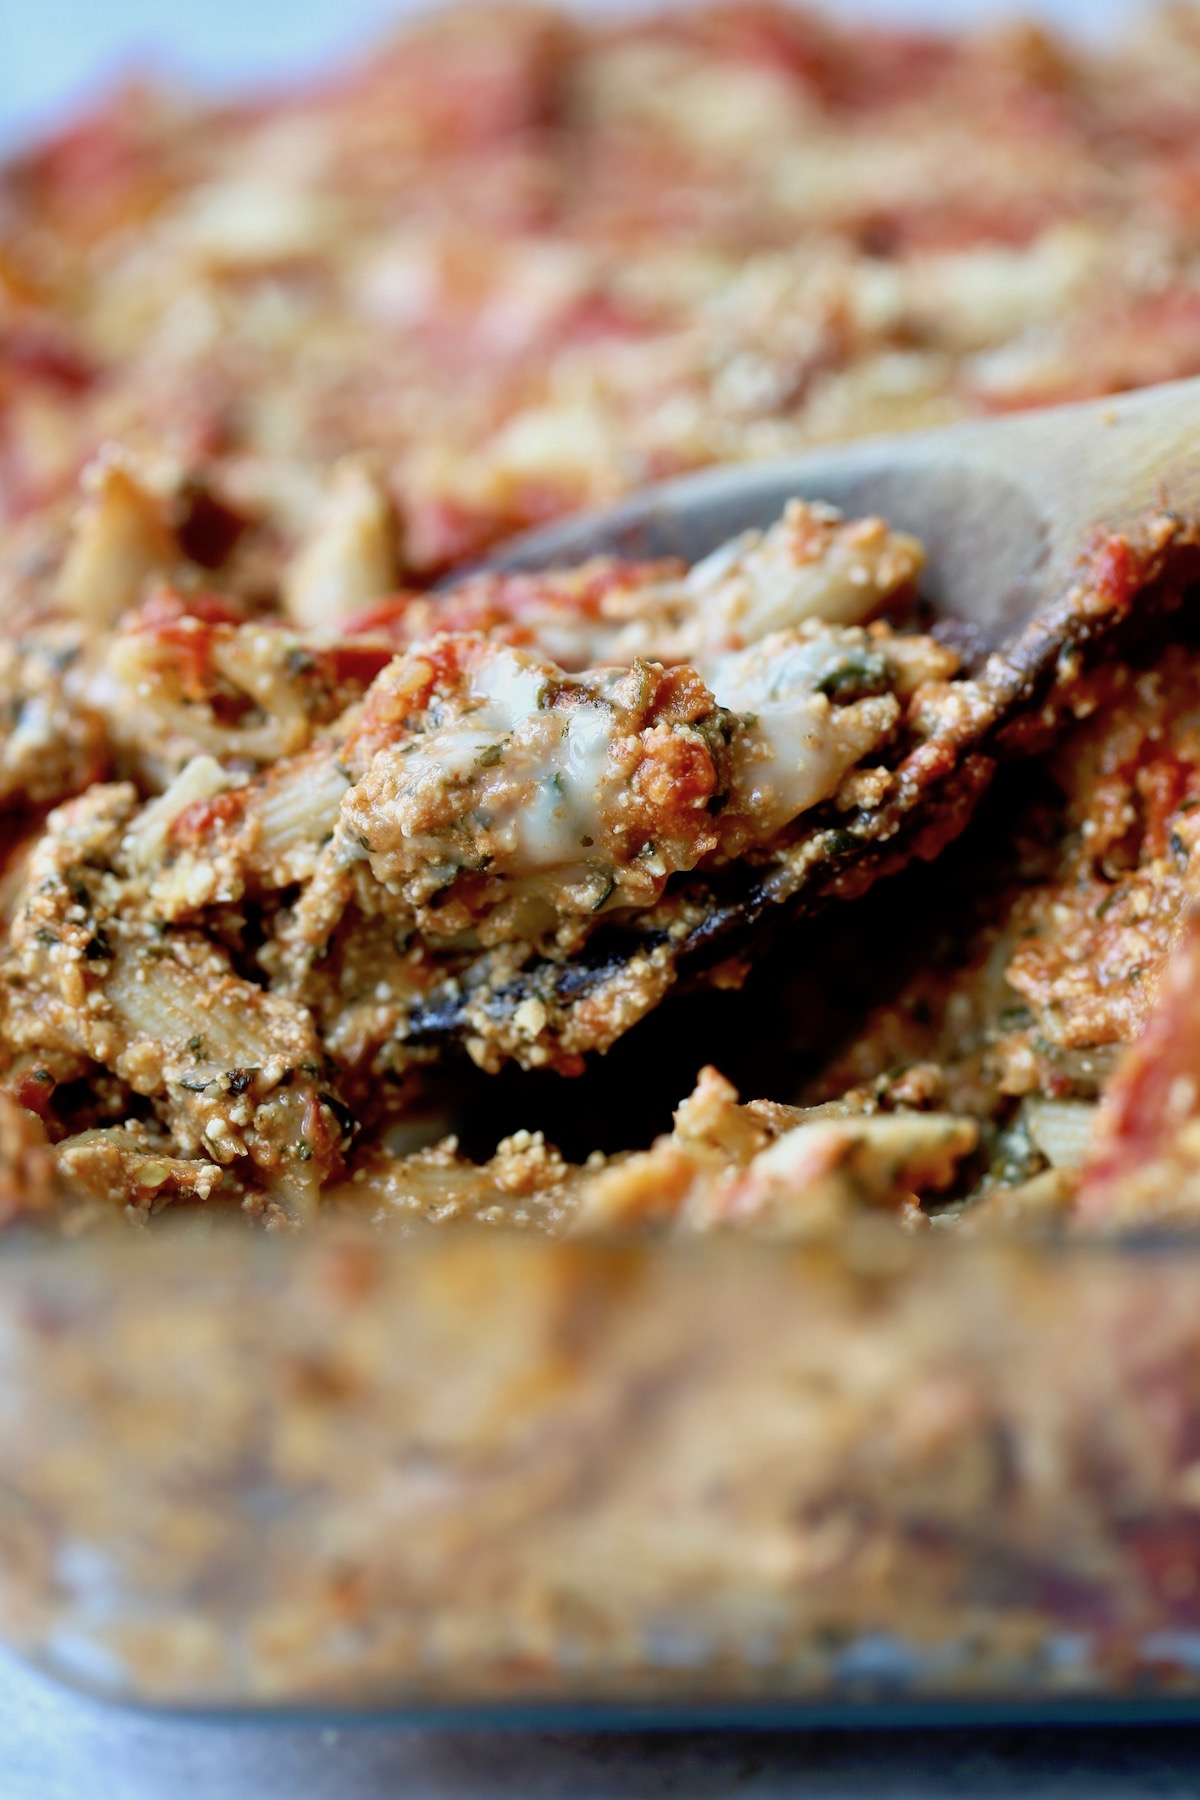 vegan and dairy-free baked ziti being scooped up with a wooden spoon